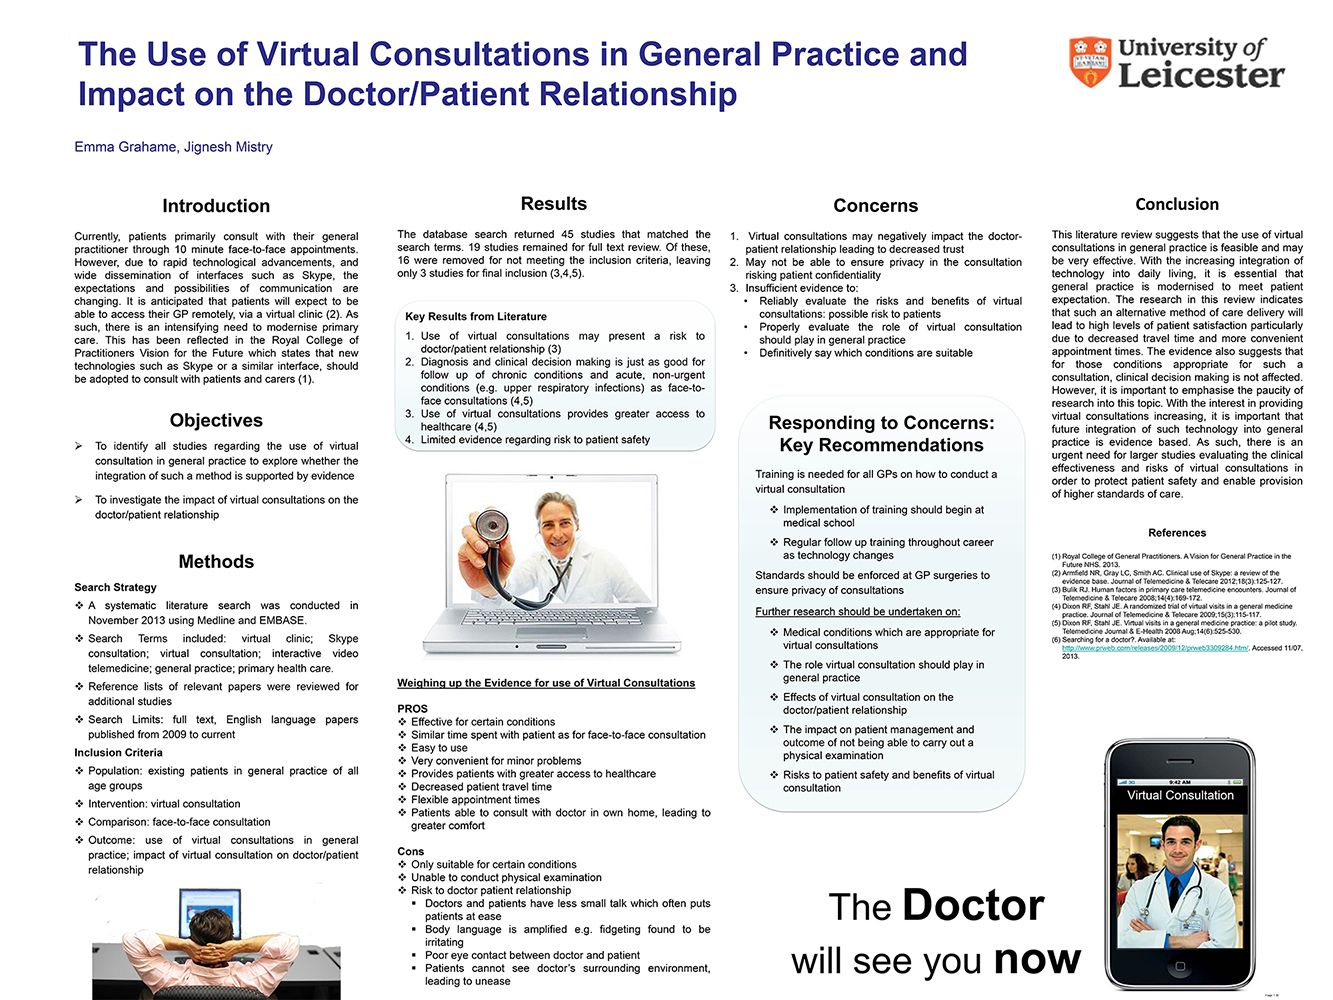 relationship between doctor and patient essay View and download doctor patient relationship essays examples doctor-patient relationship canada v ireland canada and ireland both have nationalized health care plans effective communication between registered nurses and adult oncology patients in inpatient settings.